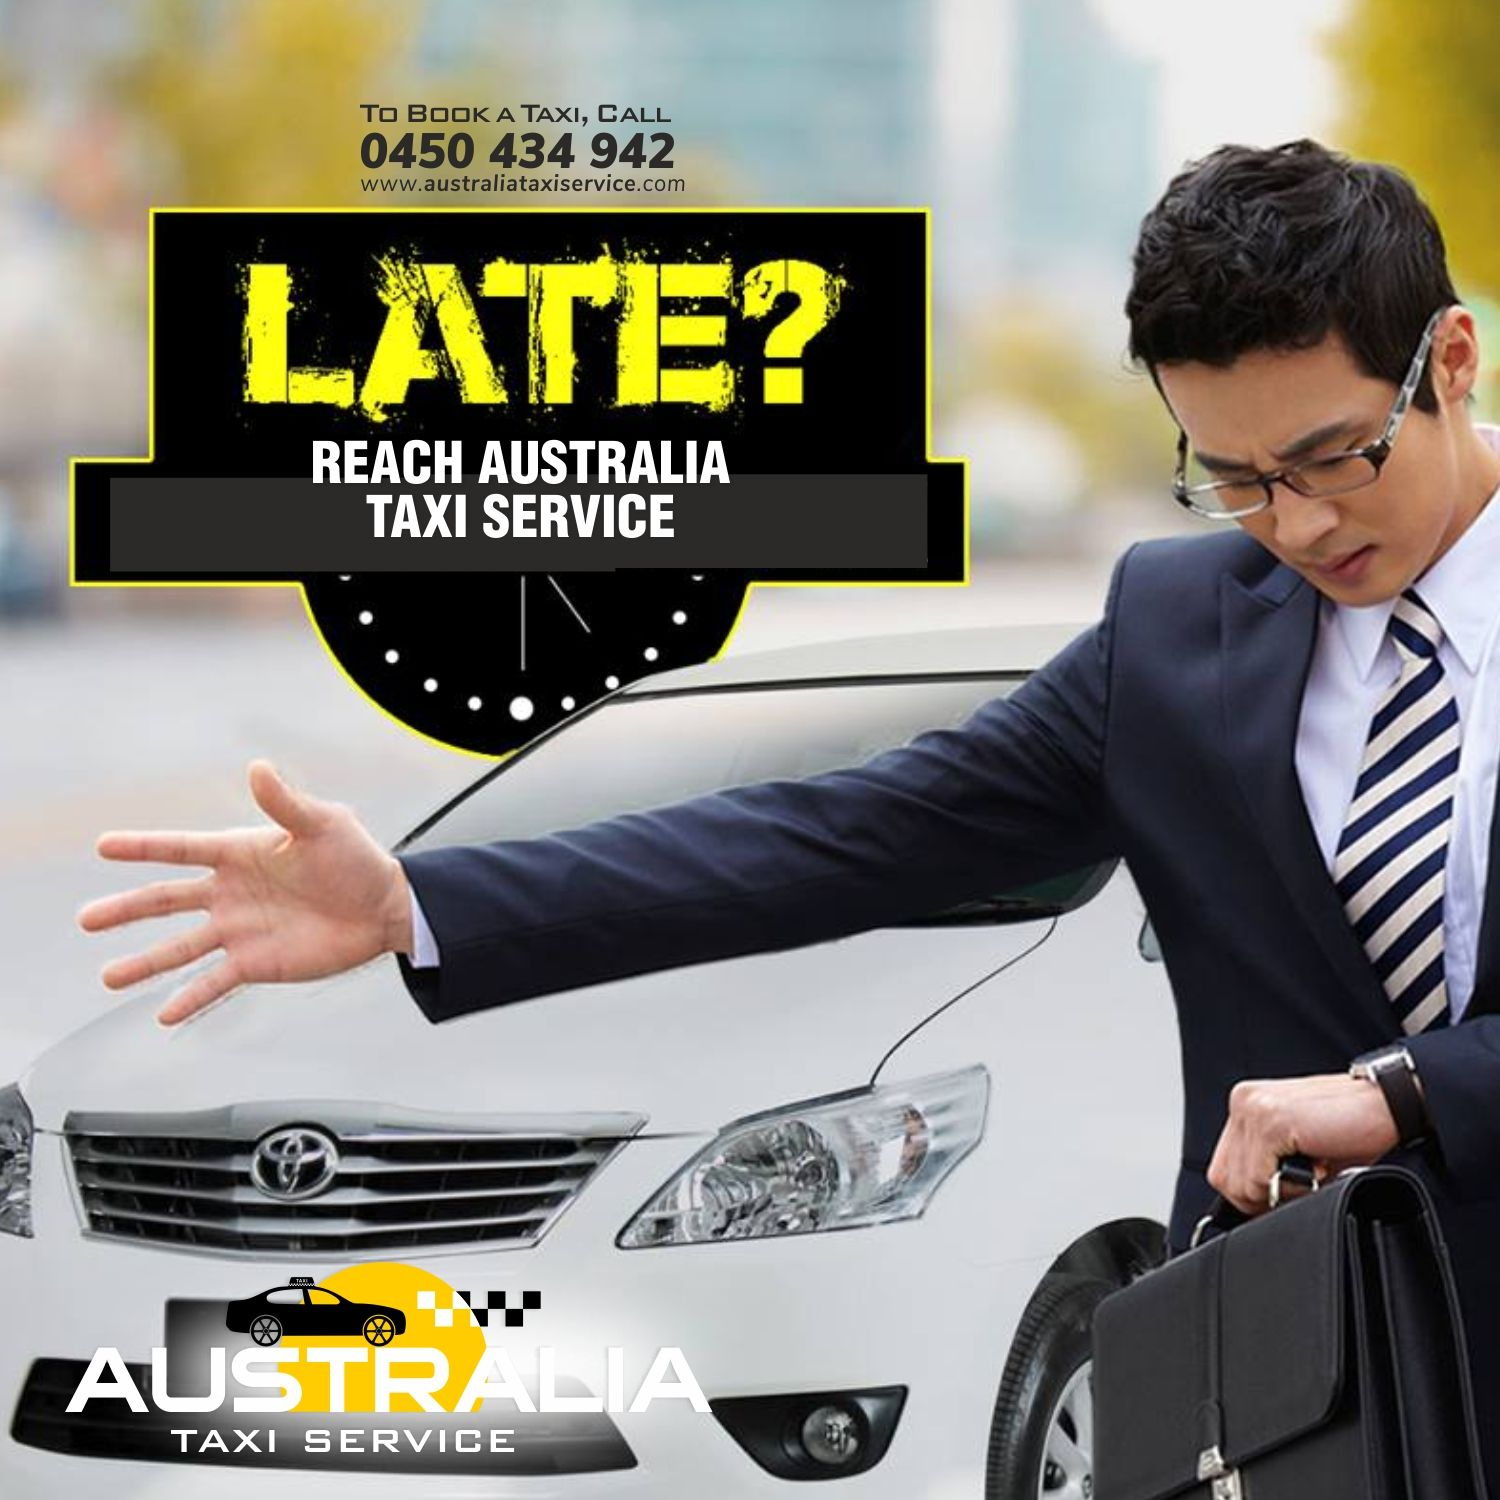 Never Be Late Be On Time With Australia Taxi Service To Book A